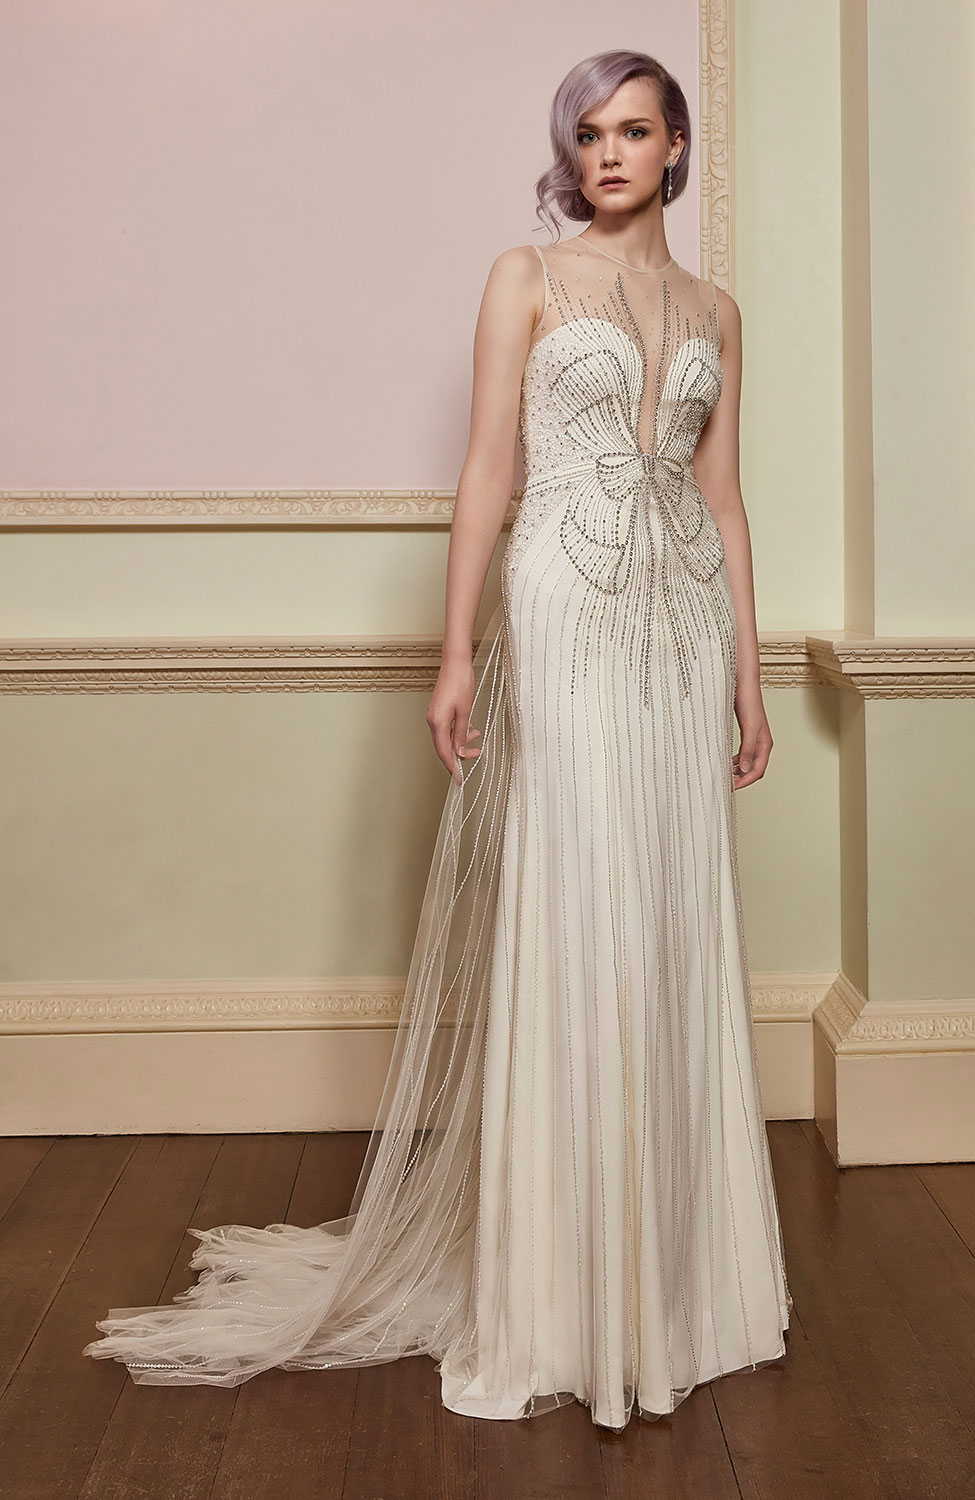 Jenny Packham Wedding Dress - Beau